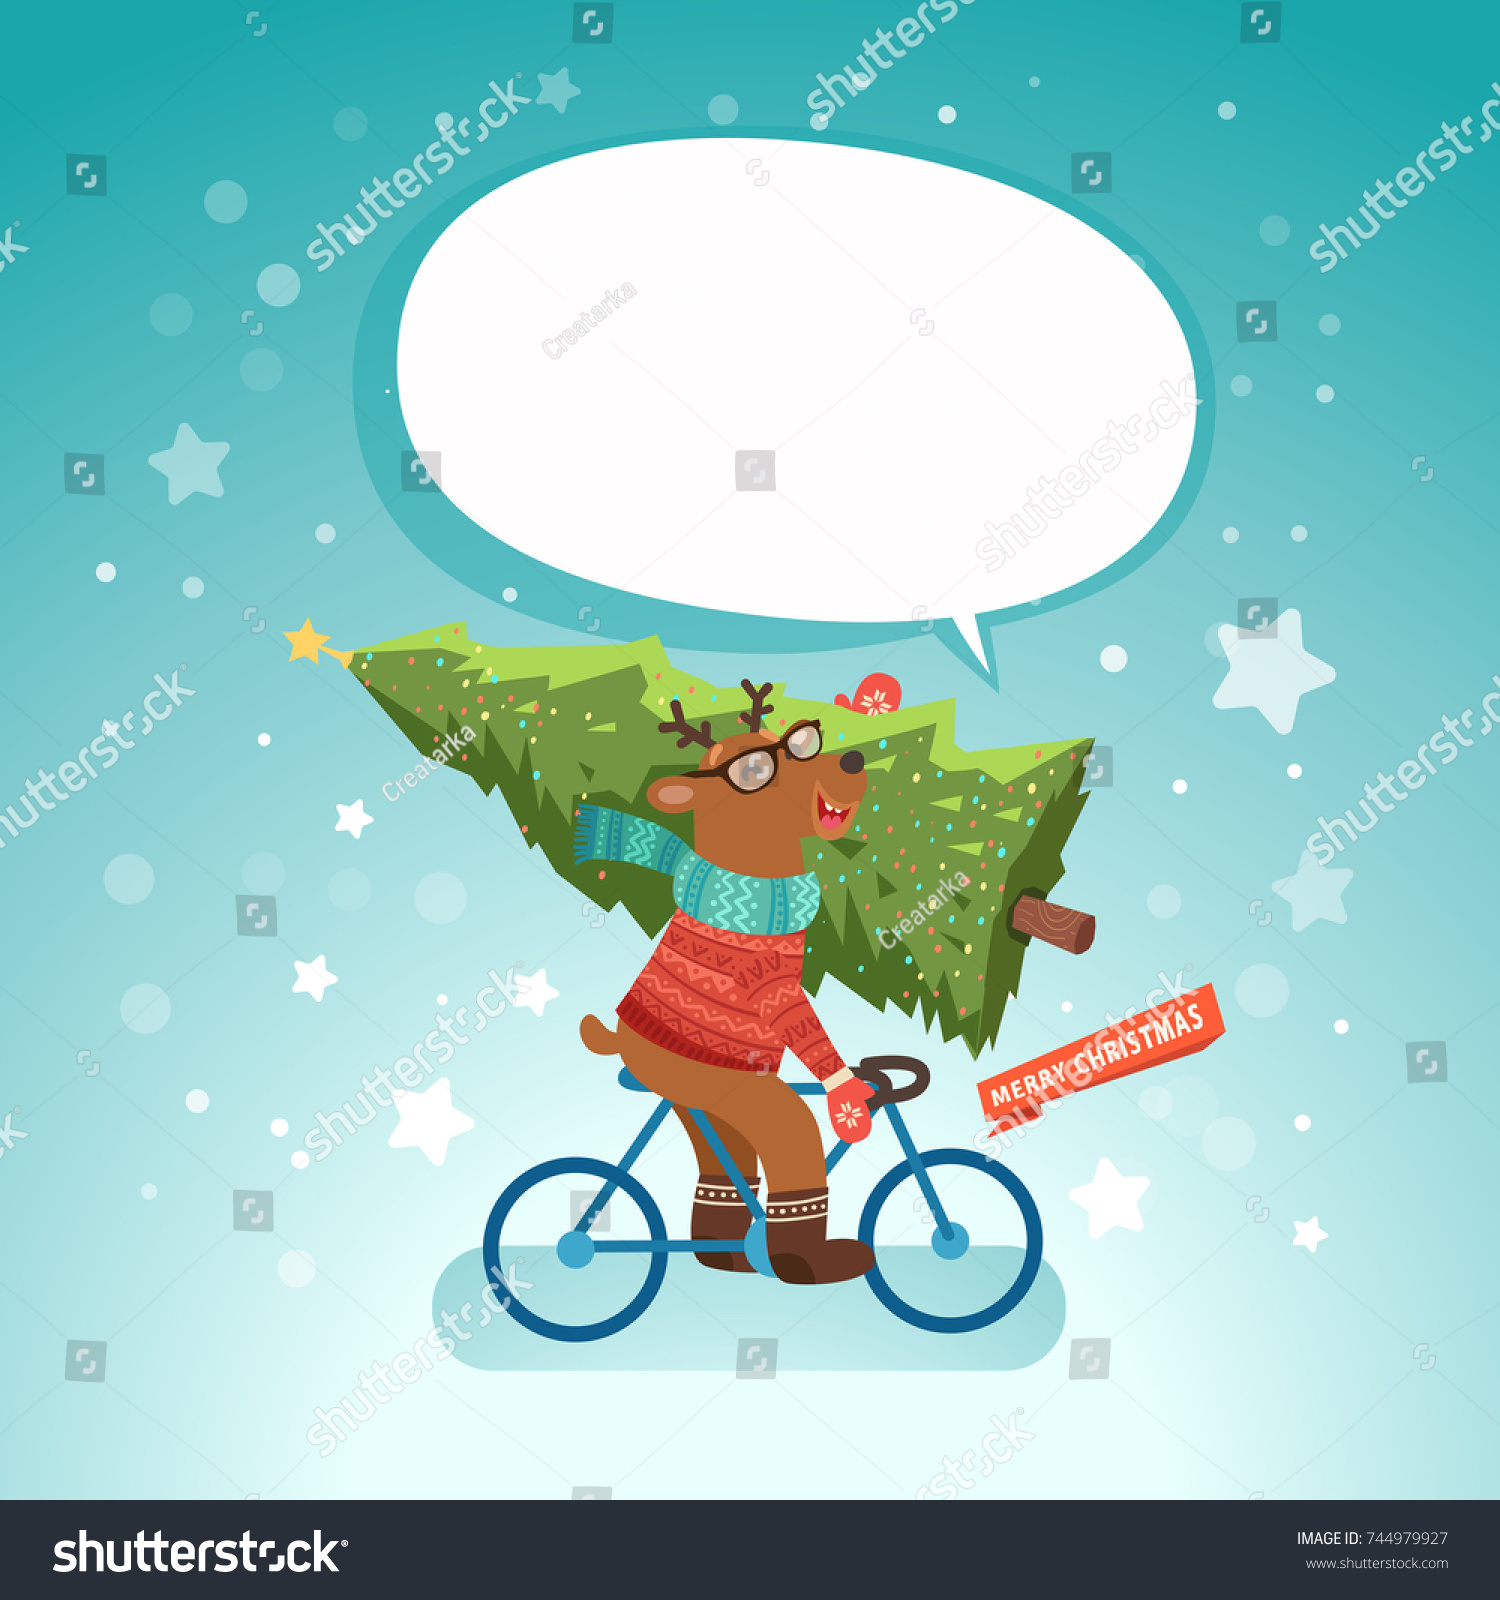 Merry Christmas Cute Reindeer On Bicycle Stock Vector (Royalty Free ...